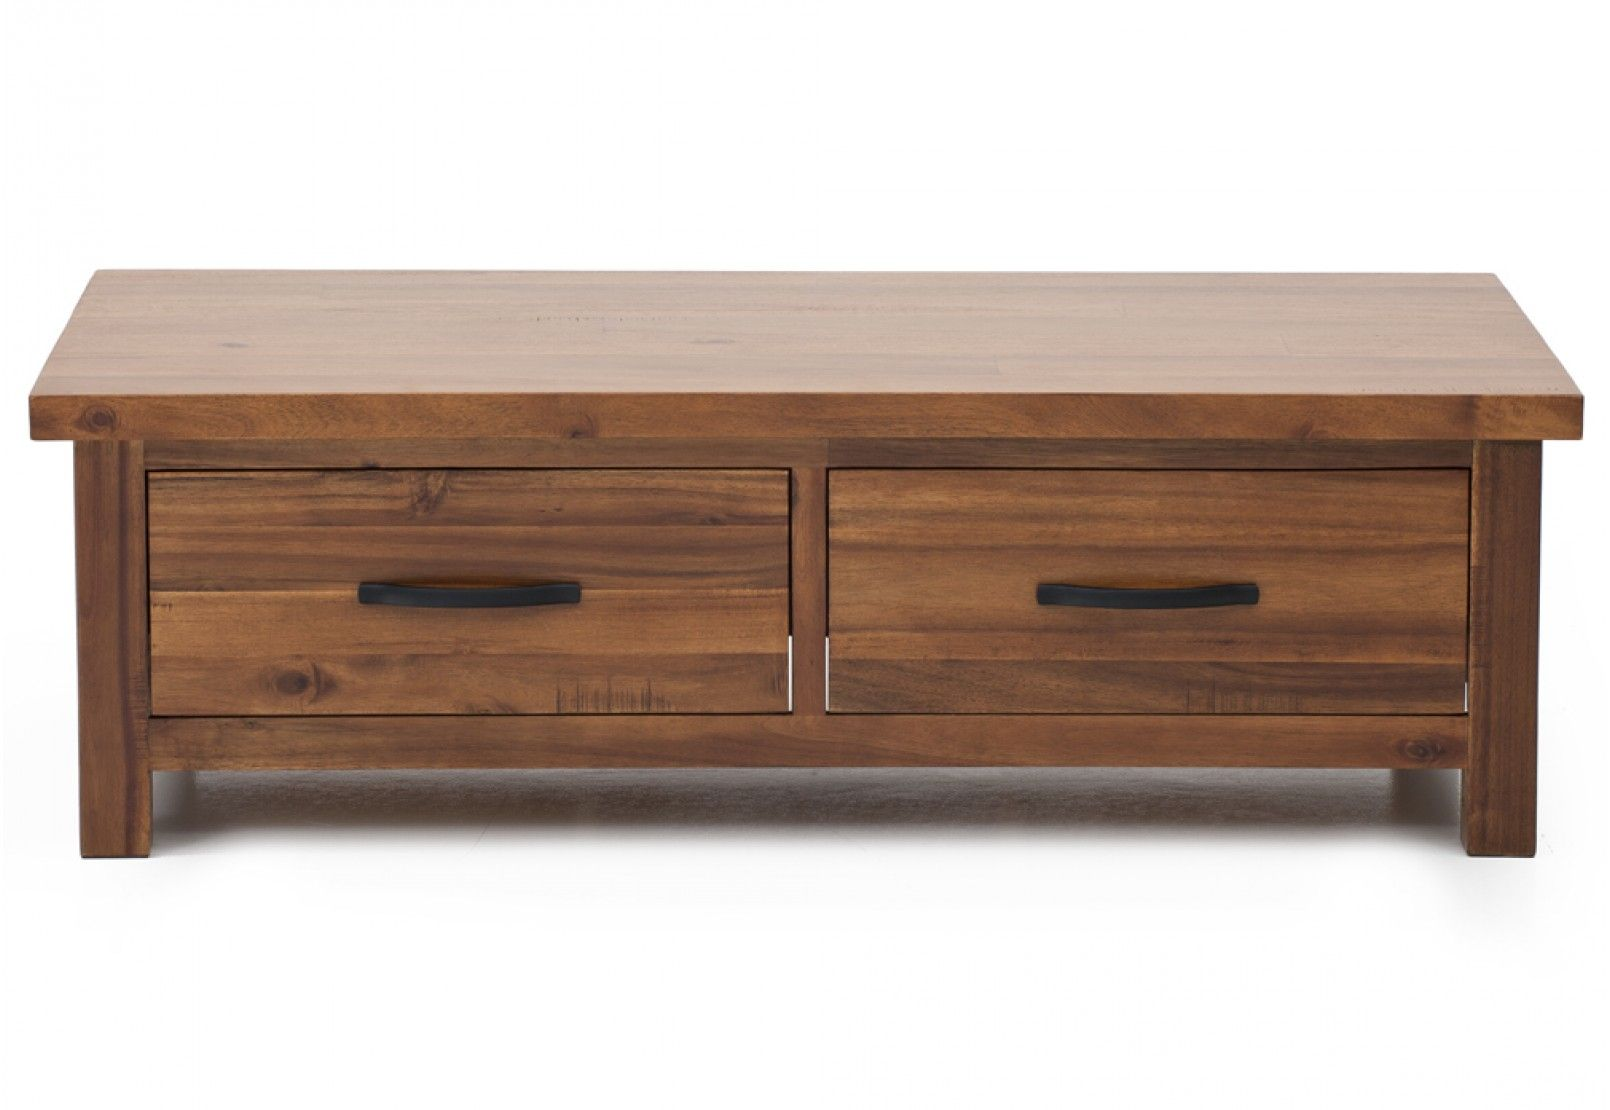 New england coffee table super a mart 369 decorating ideas new england coffee table super a mart 369 geotapseo Gallery